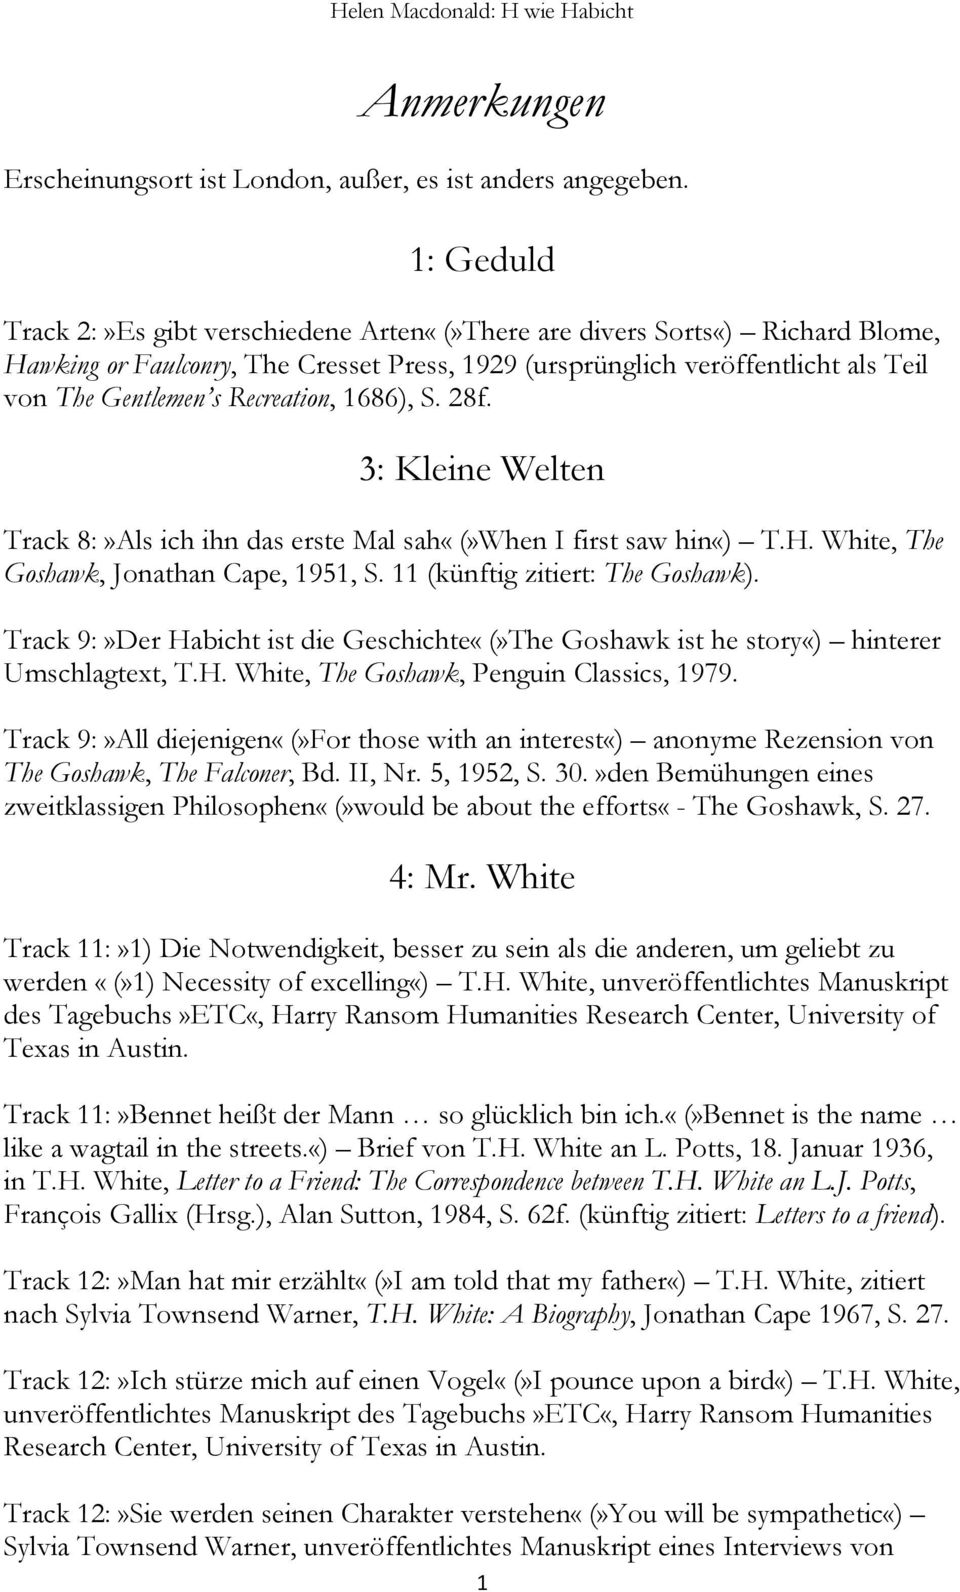 Recreation, 1686), S. 28f. 3: Kleine Welten Track 8:»Als ich ihn das erste Mal sah«(»when I first saw hin«) T.H. White, The Goshawk, Jonathan Cape, 1951, S. 11 (künftig zitiert: The Goshawk).